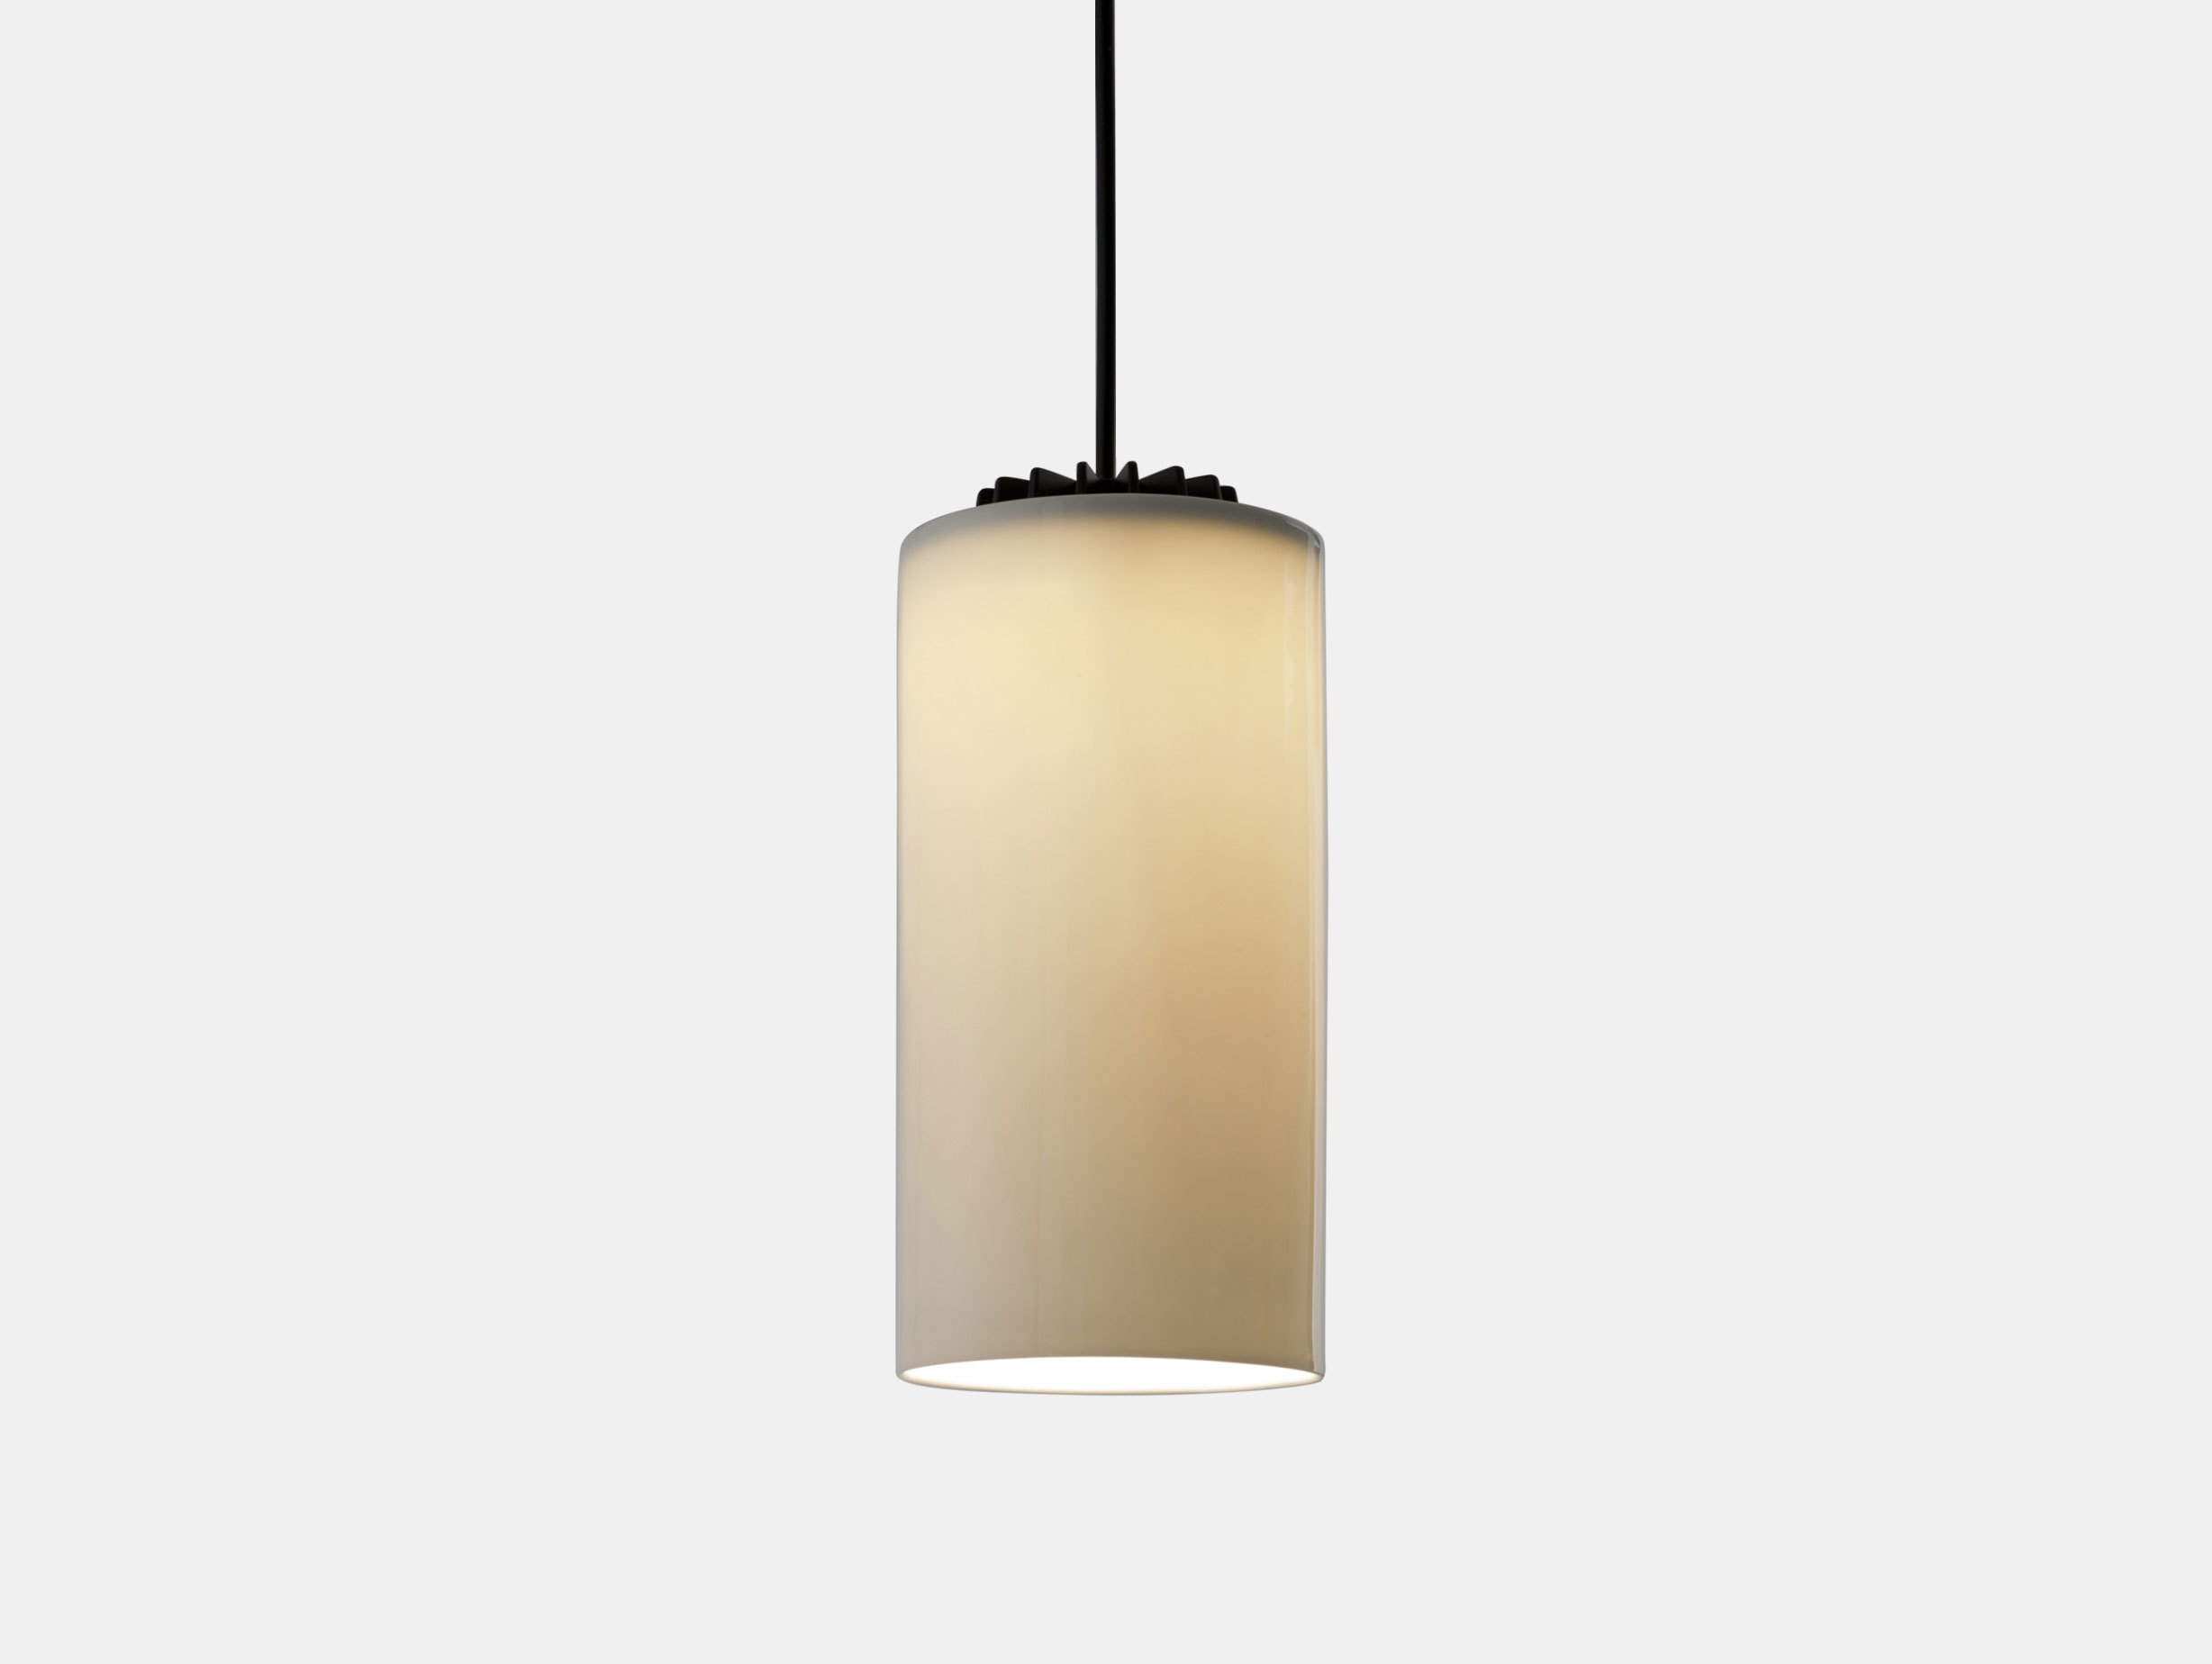 Cirio Simple Pendant Light image 3